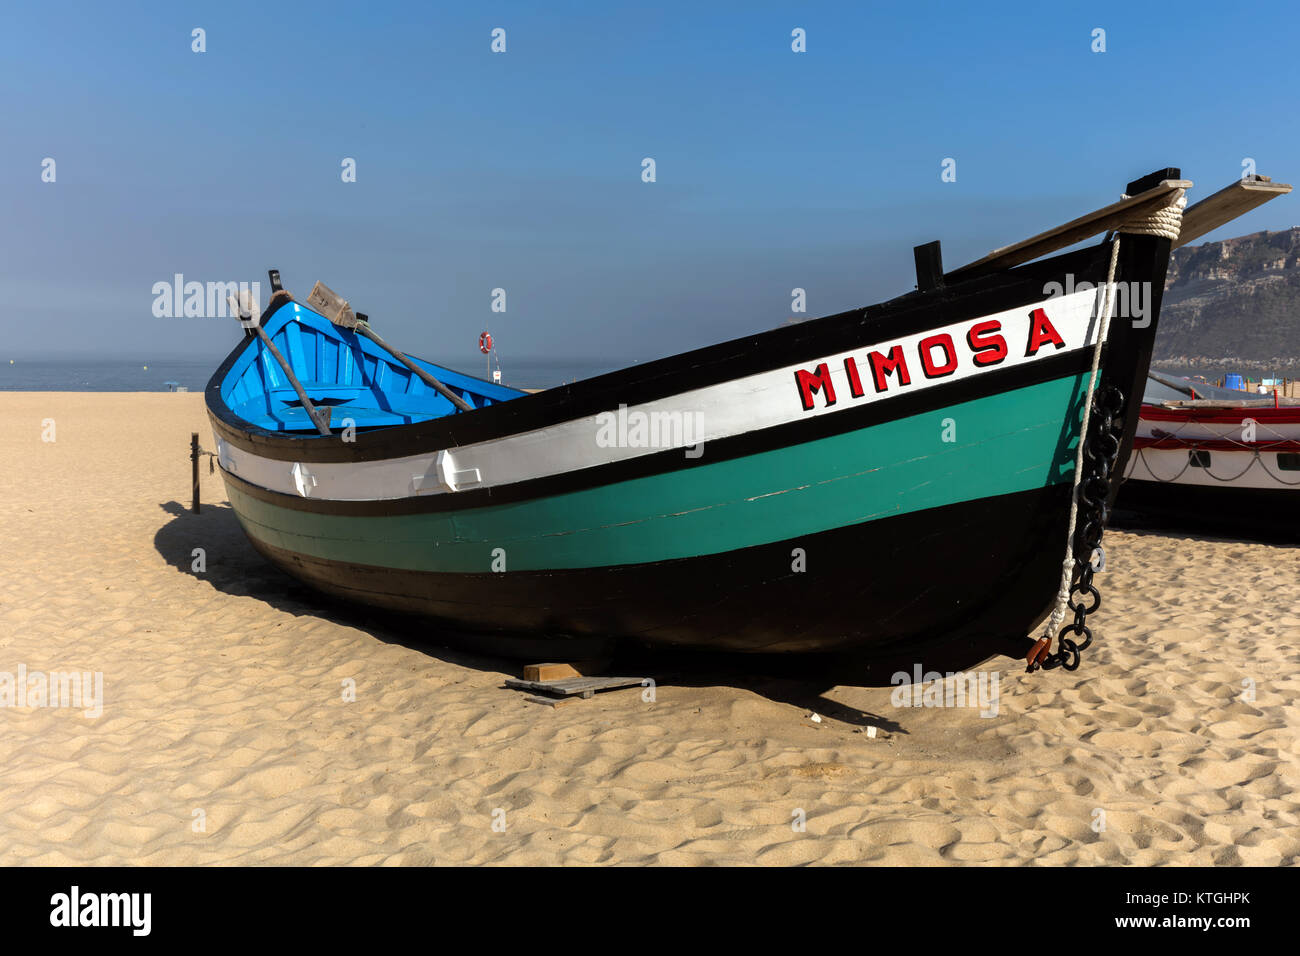 Nazare, Portugal, August 12, 2017: Historic examples of the colorful fishing boats used by the local fishermen not - Stock Image